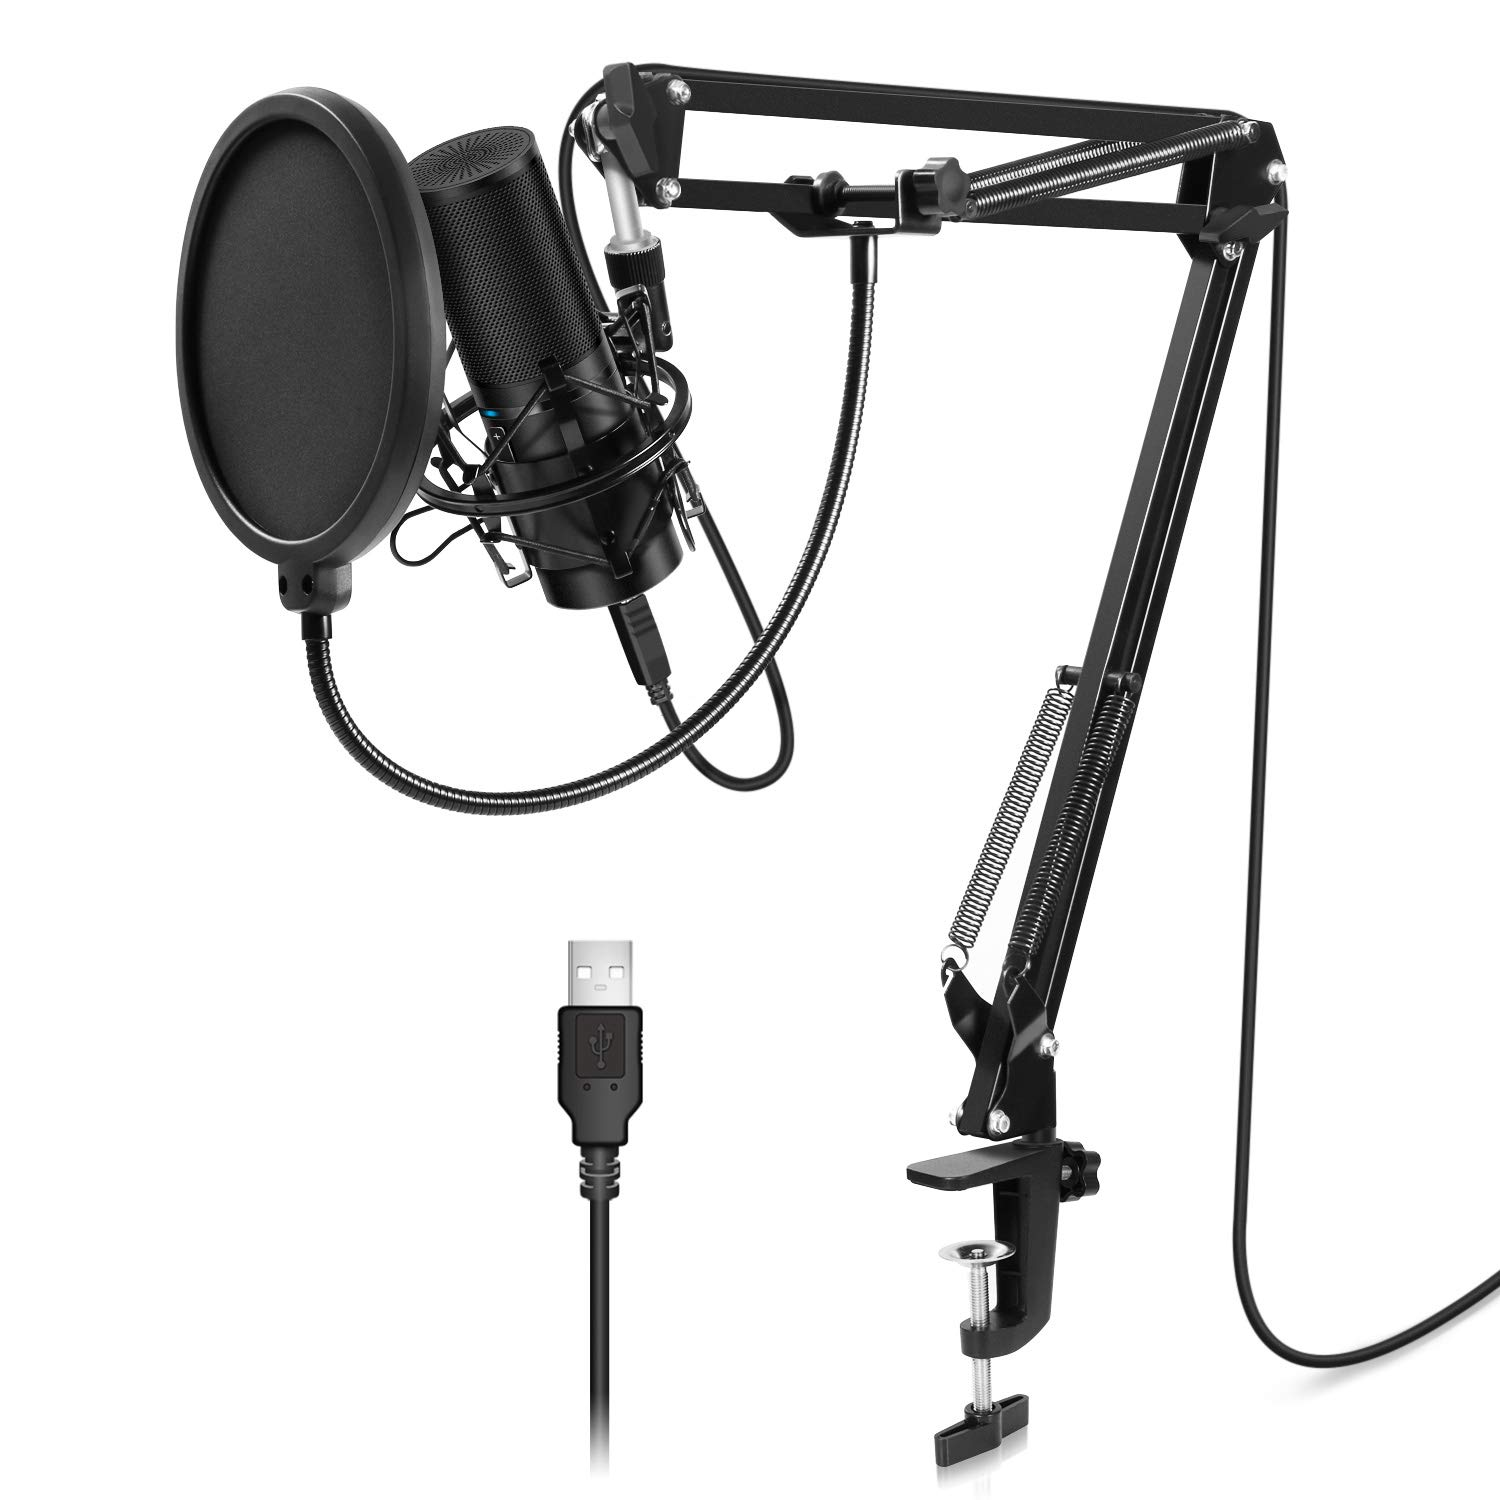 TONOR USB Microphone Kit Q9 Condenser Computer Cardioid Mic for Podcast, Game, Youtube Video, Stream, Recording Music, Voice Over by TONOR (Image #1)